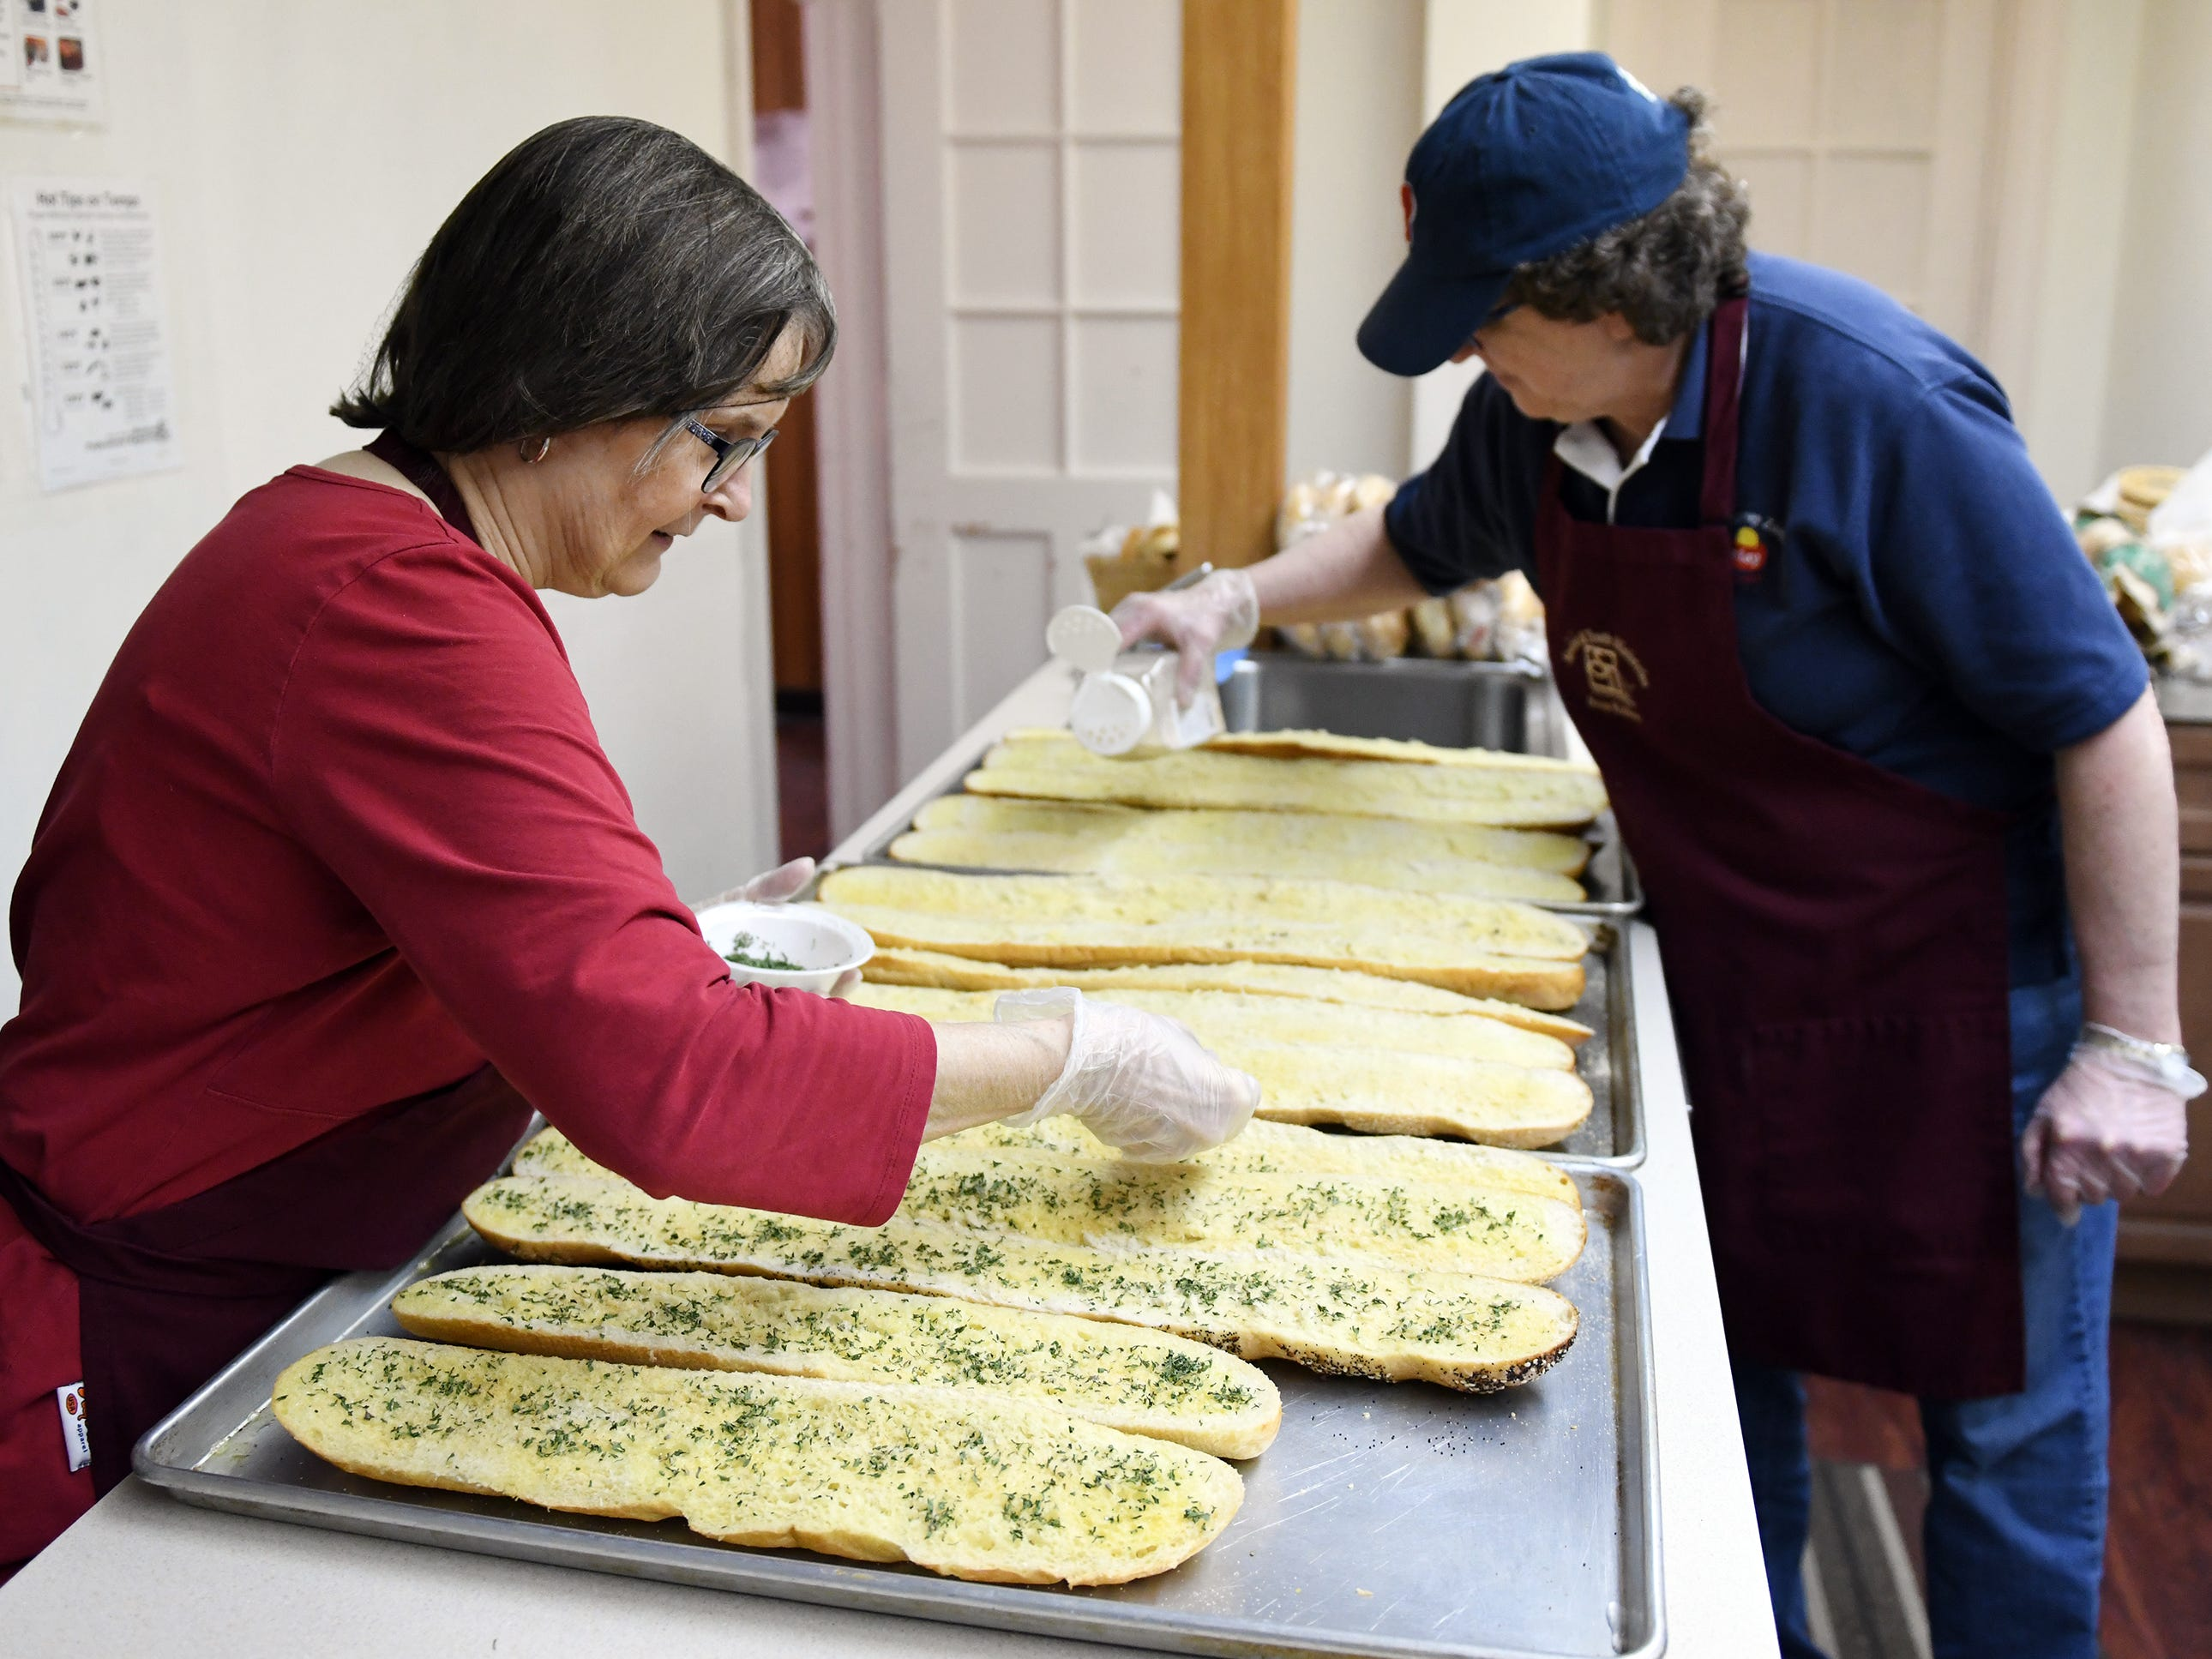 First United Methodist Church soup kitchen volunteers Barbara Cline (left) and Val Polhanus, both from Vineland, help make garlic bread in the church's kitchen on Tuesday, Jan. 29, 2019.